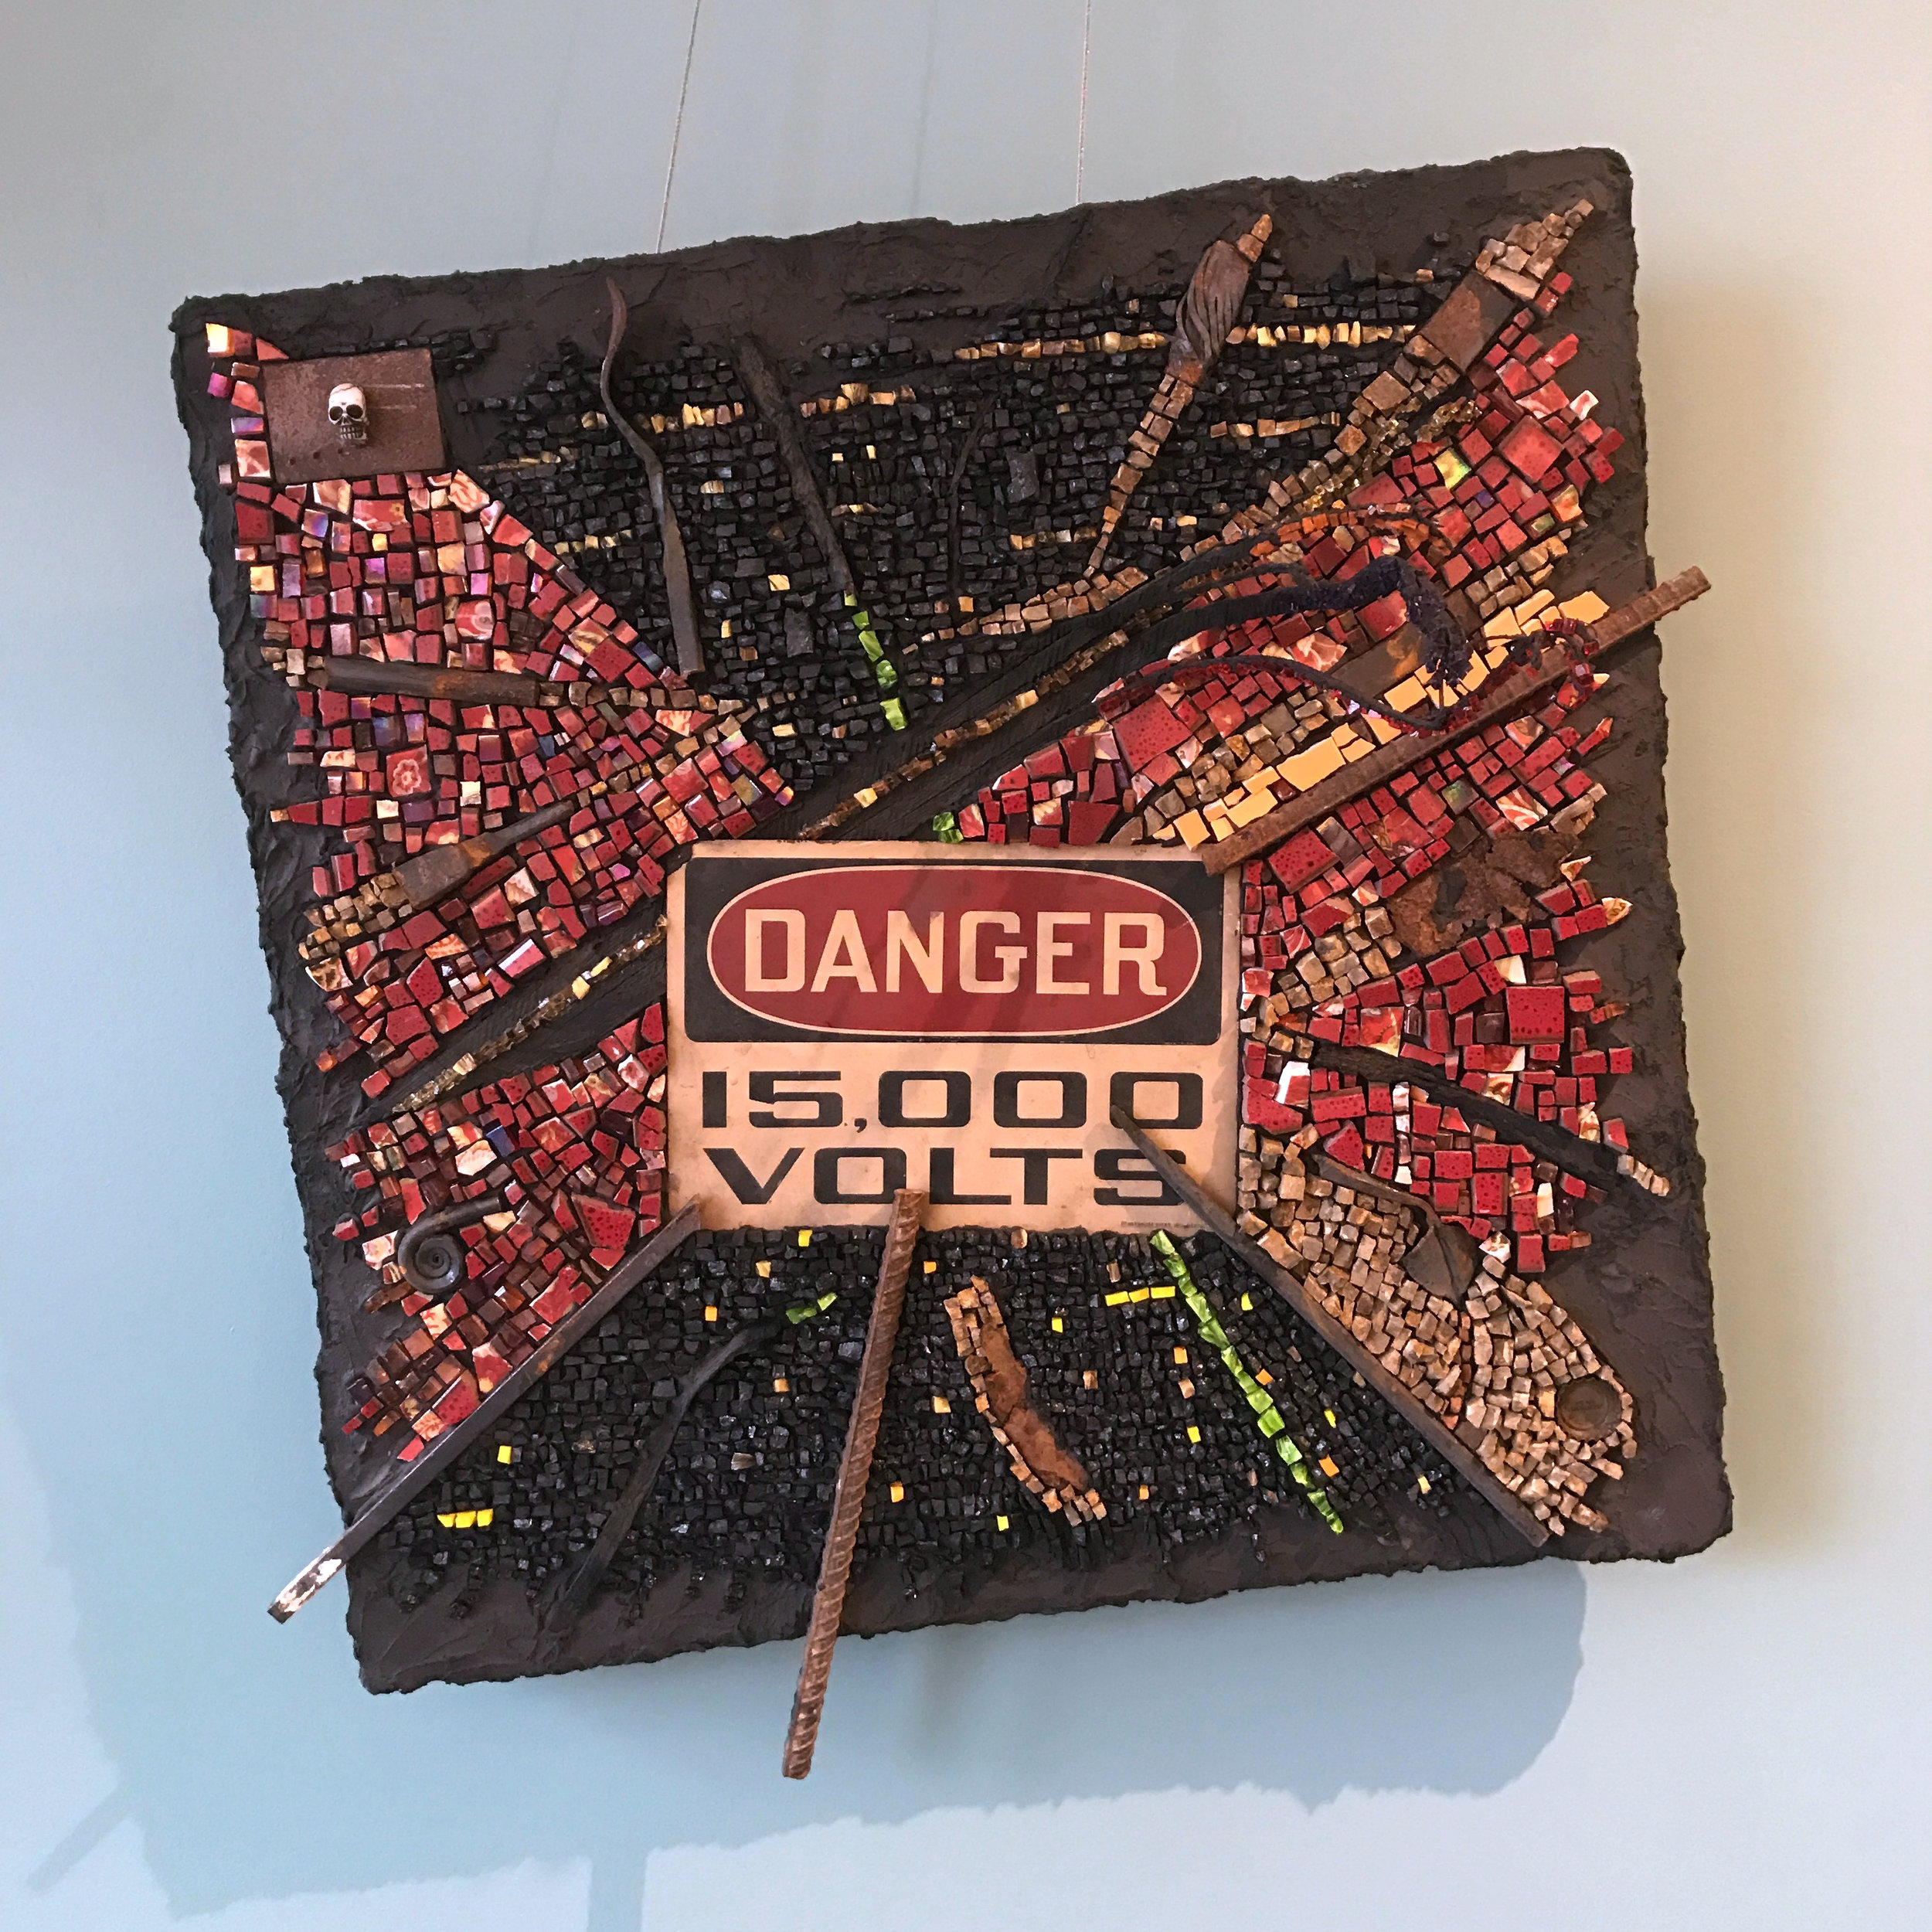 """""""Danger"""" 2015 Coal, anthracite, limestone, sandstone, porcelain, ceramic, molten glass, stained glass, smalti, steel shards, tire shards in thin-set mortar on hand-made substrate., 26""""w x 26""""h x 5""""d"""